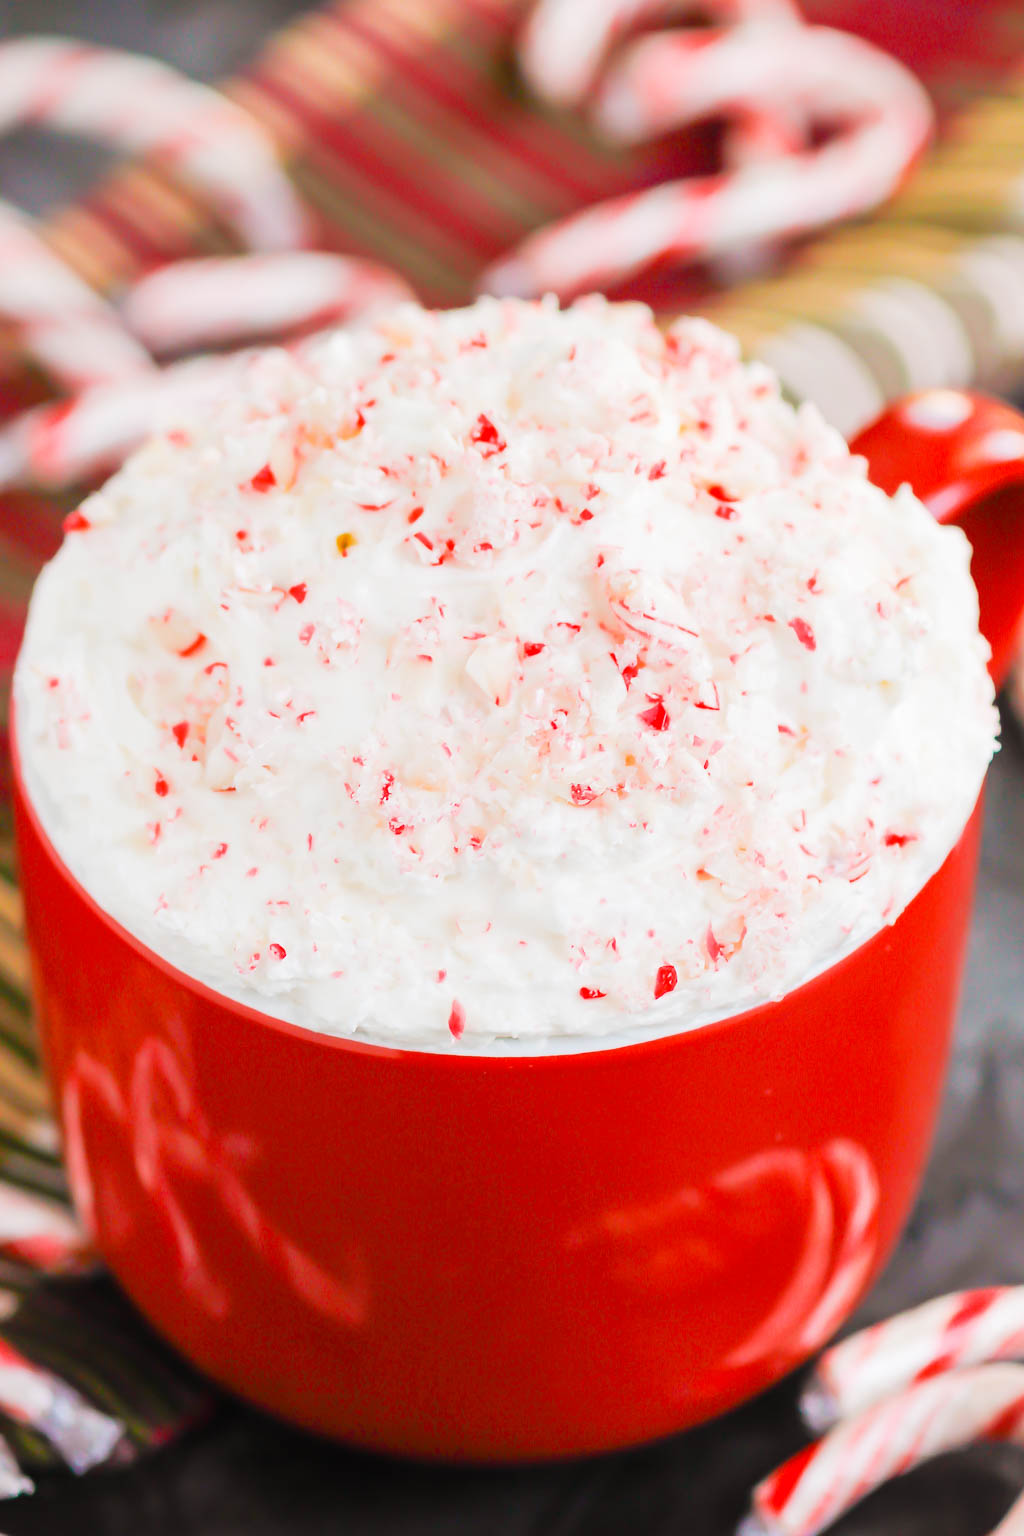 You're going to fall in love with how easy and delicious this Peppermint Cheesecake Dip recipe is to make. It's a bright and refreshing dessert option for your holiday table. This treat mixes up in minutes and will be a hit with everyone! #peppermint #peppermintdip #peppermintcheesecake #peppermintcheesecakedip #candycanedip #dessert #christmasdessert #holidaydessert